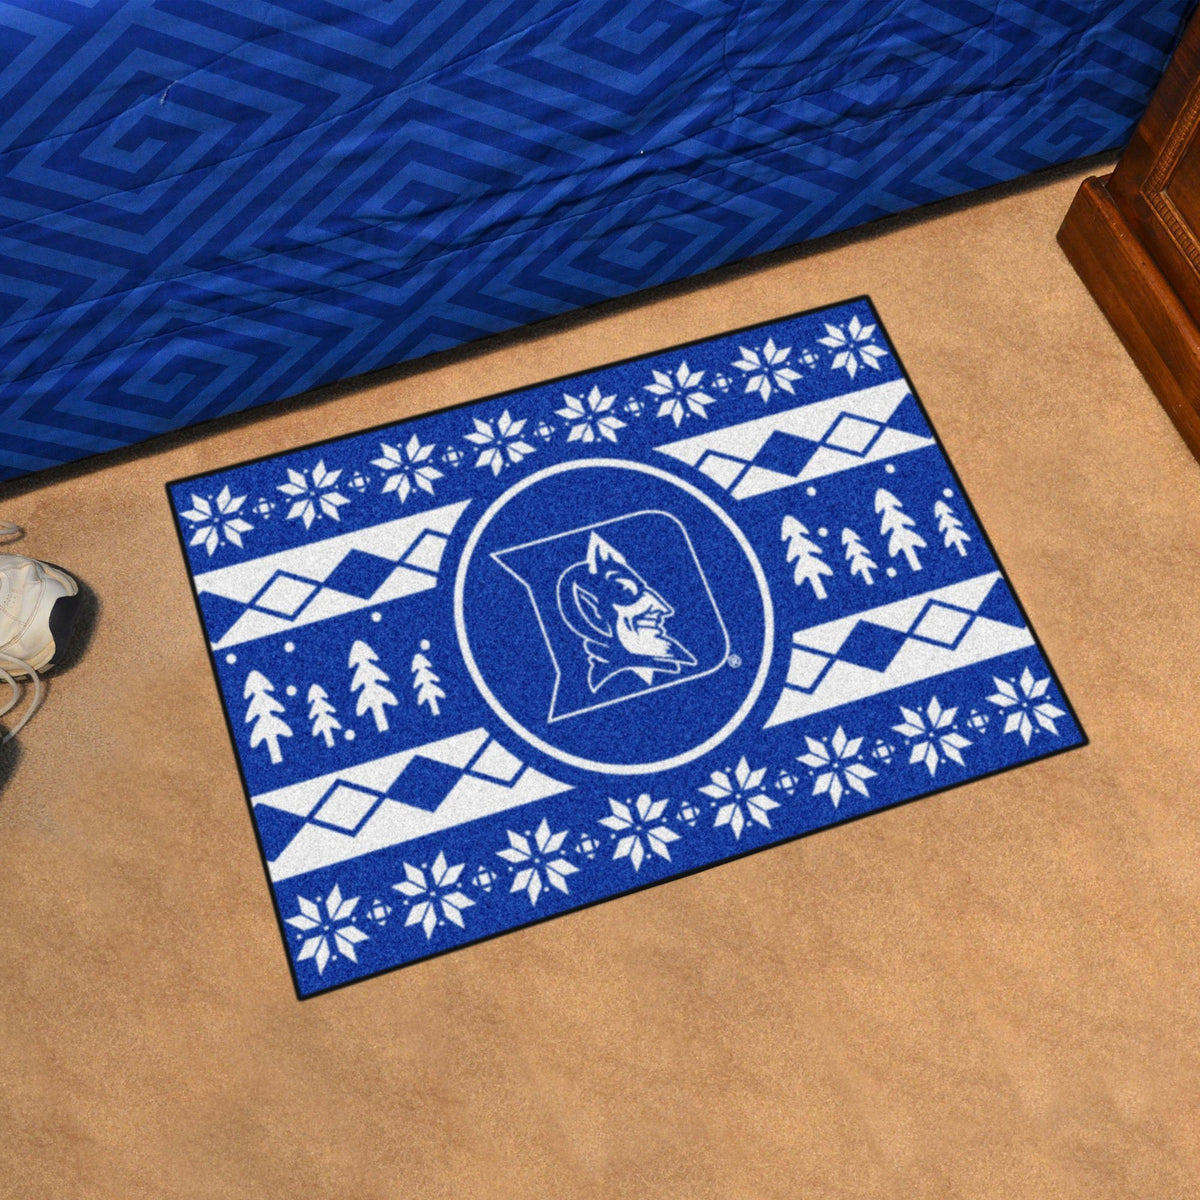 Collegiate - Holiday Sweater Starter Mat Collegiate Mats, Rectangular Mats, Holiday Sweater Starter Mat, Collegiate, Home Fan Mats Duke